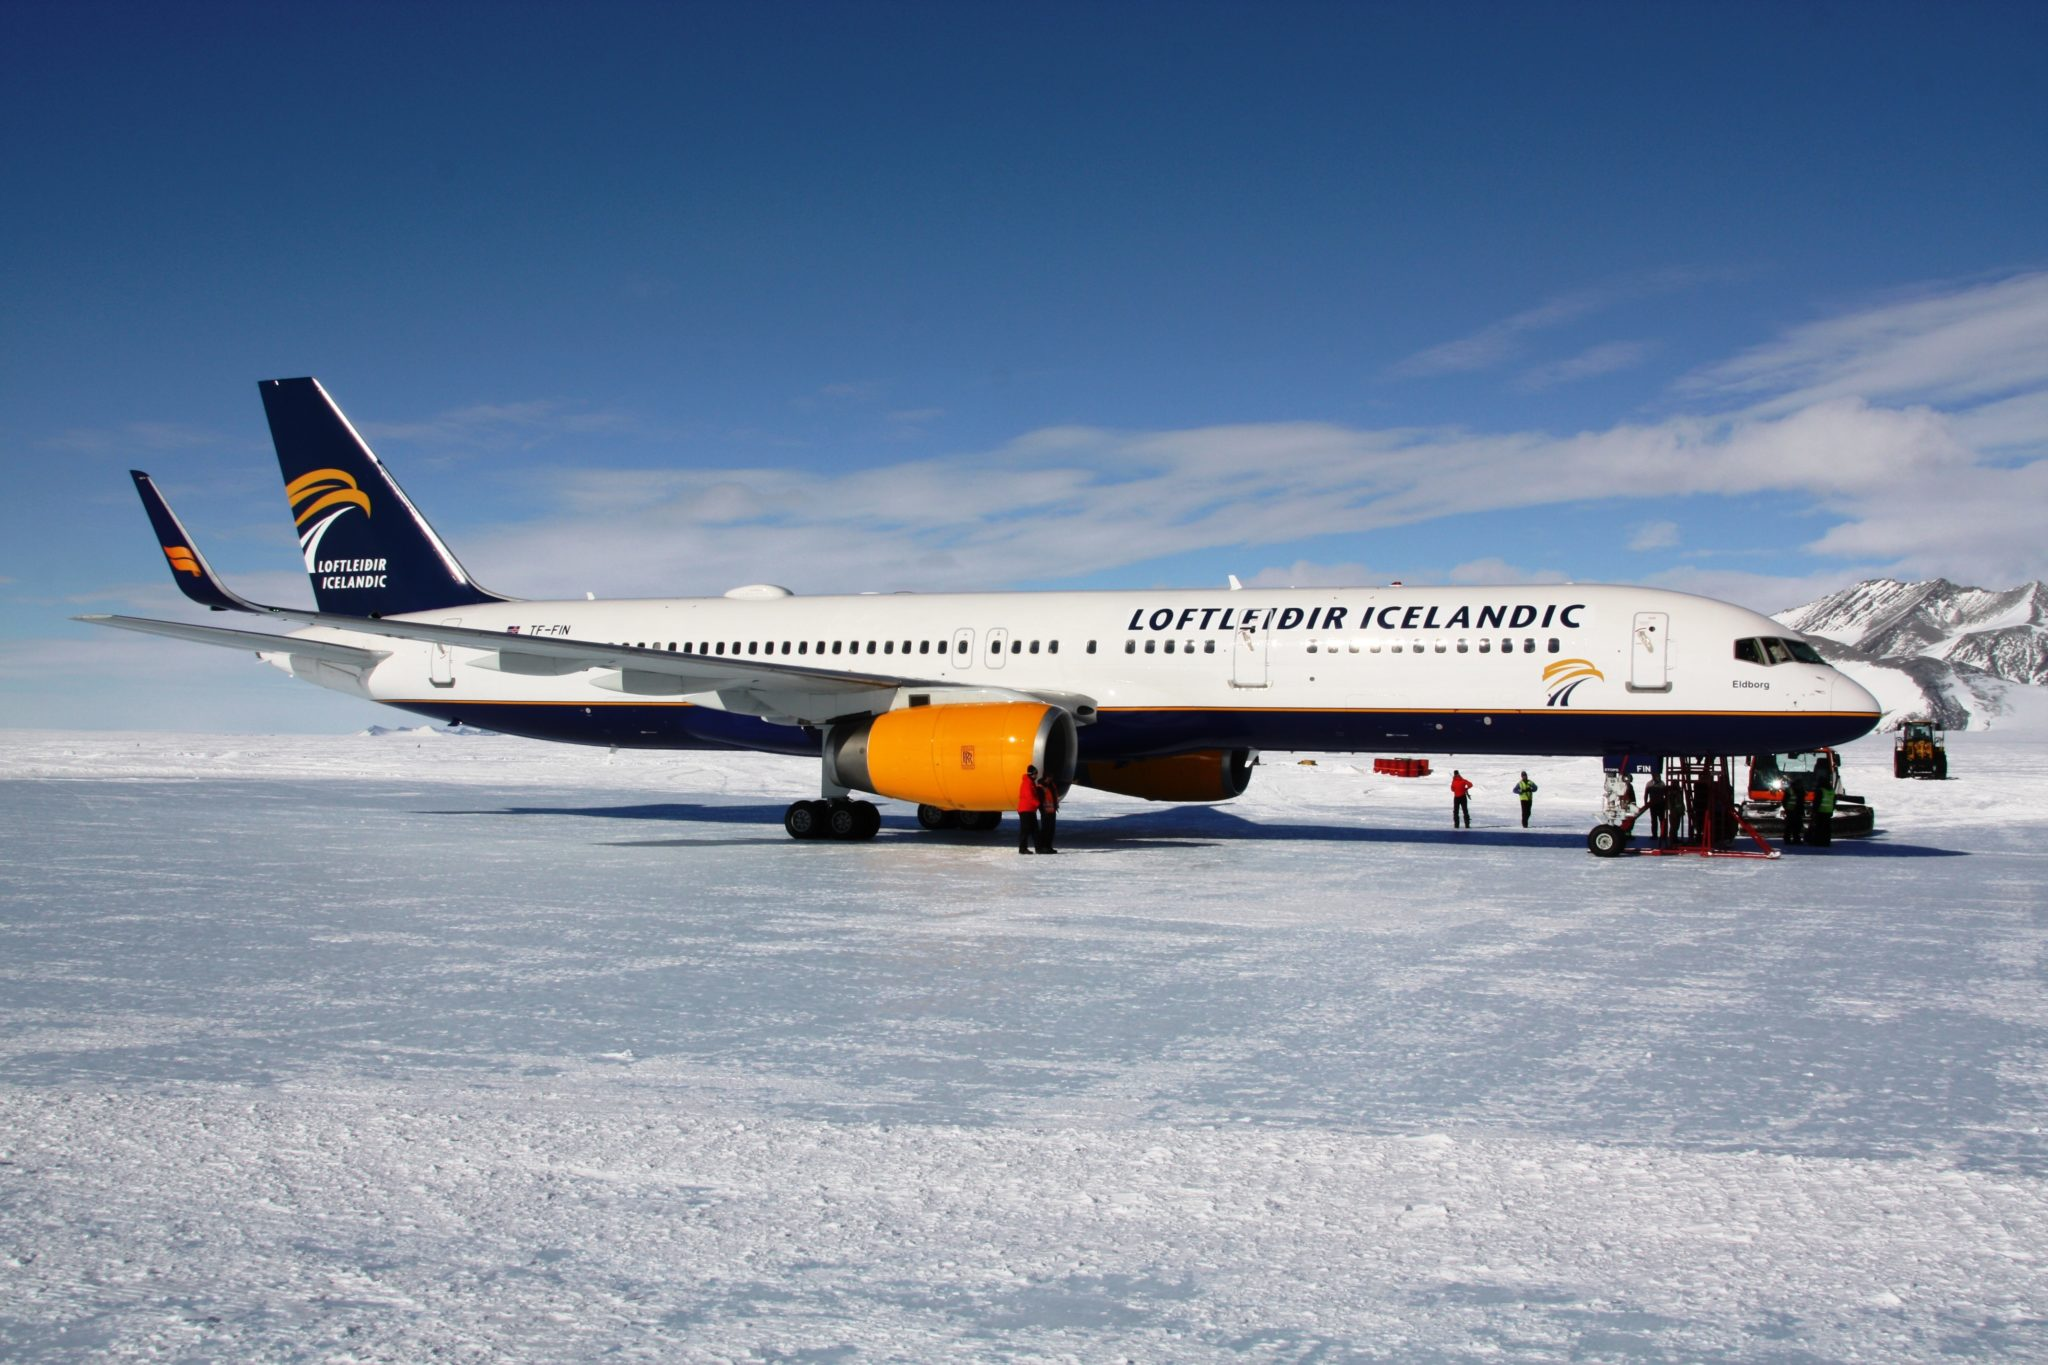 Icelandic becomes first regular airline to serve Antarctica